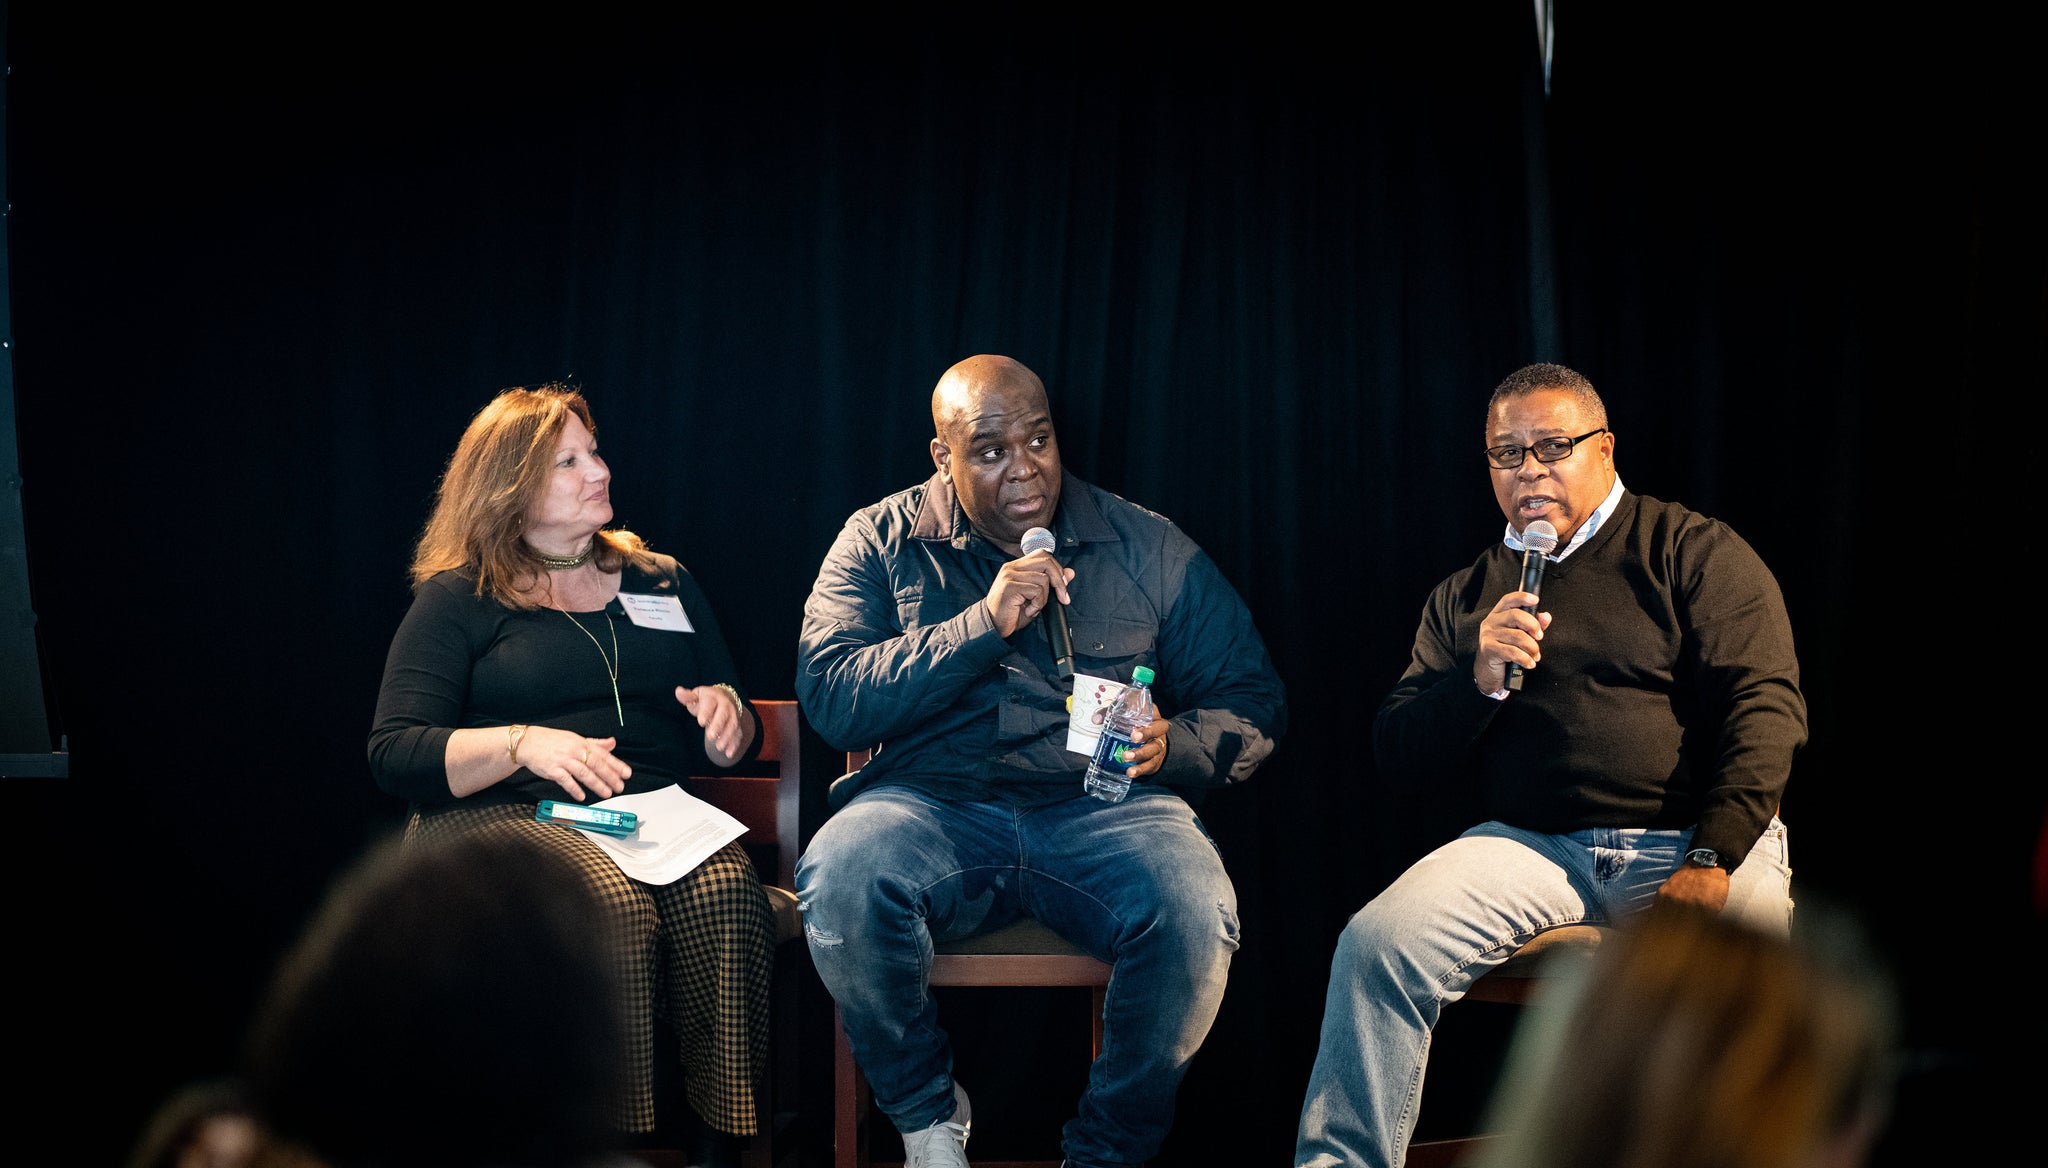 Make Your Mark: An In-Depth Conversation on Impact with Boston Community Leaders